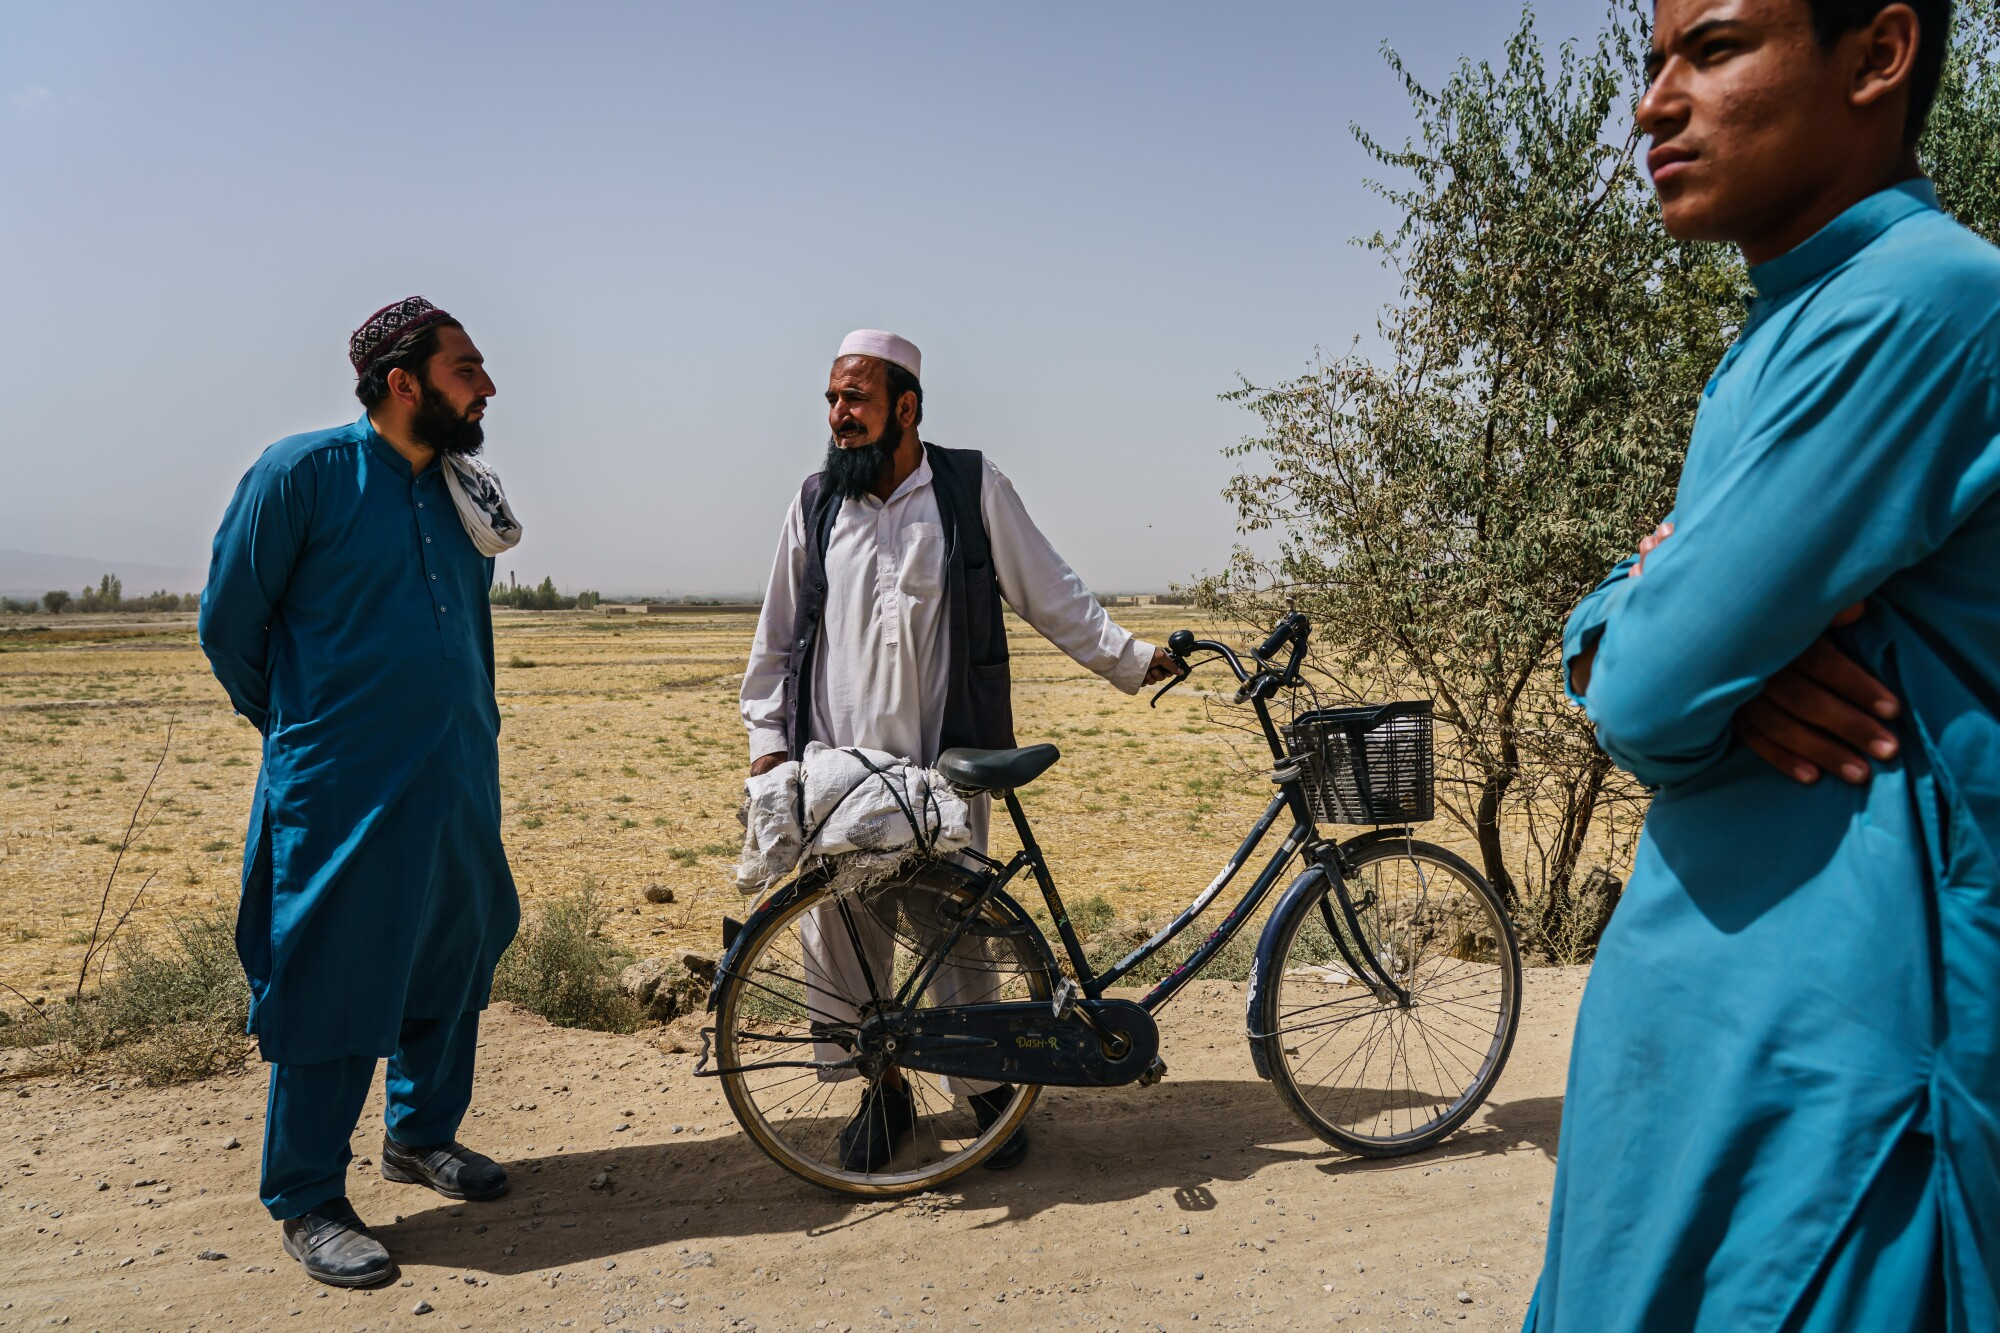 A man with a bicycle talks to two others on a rural road with an empty field in the background.